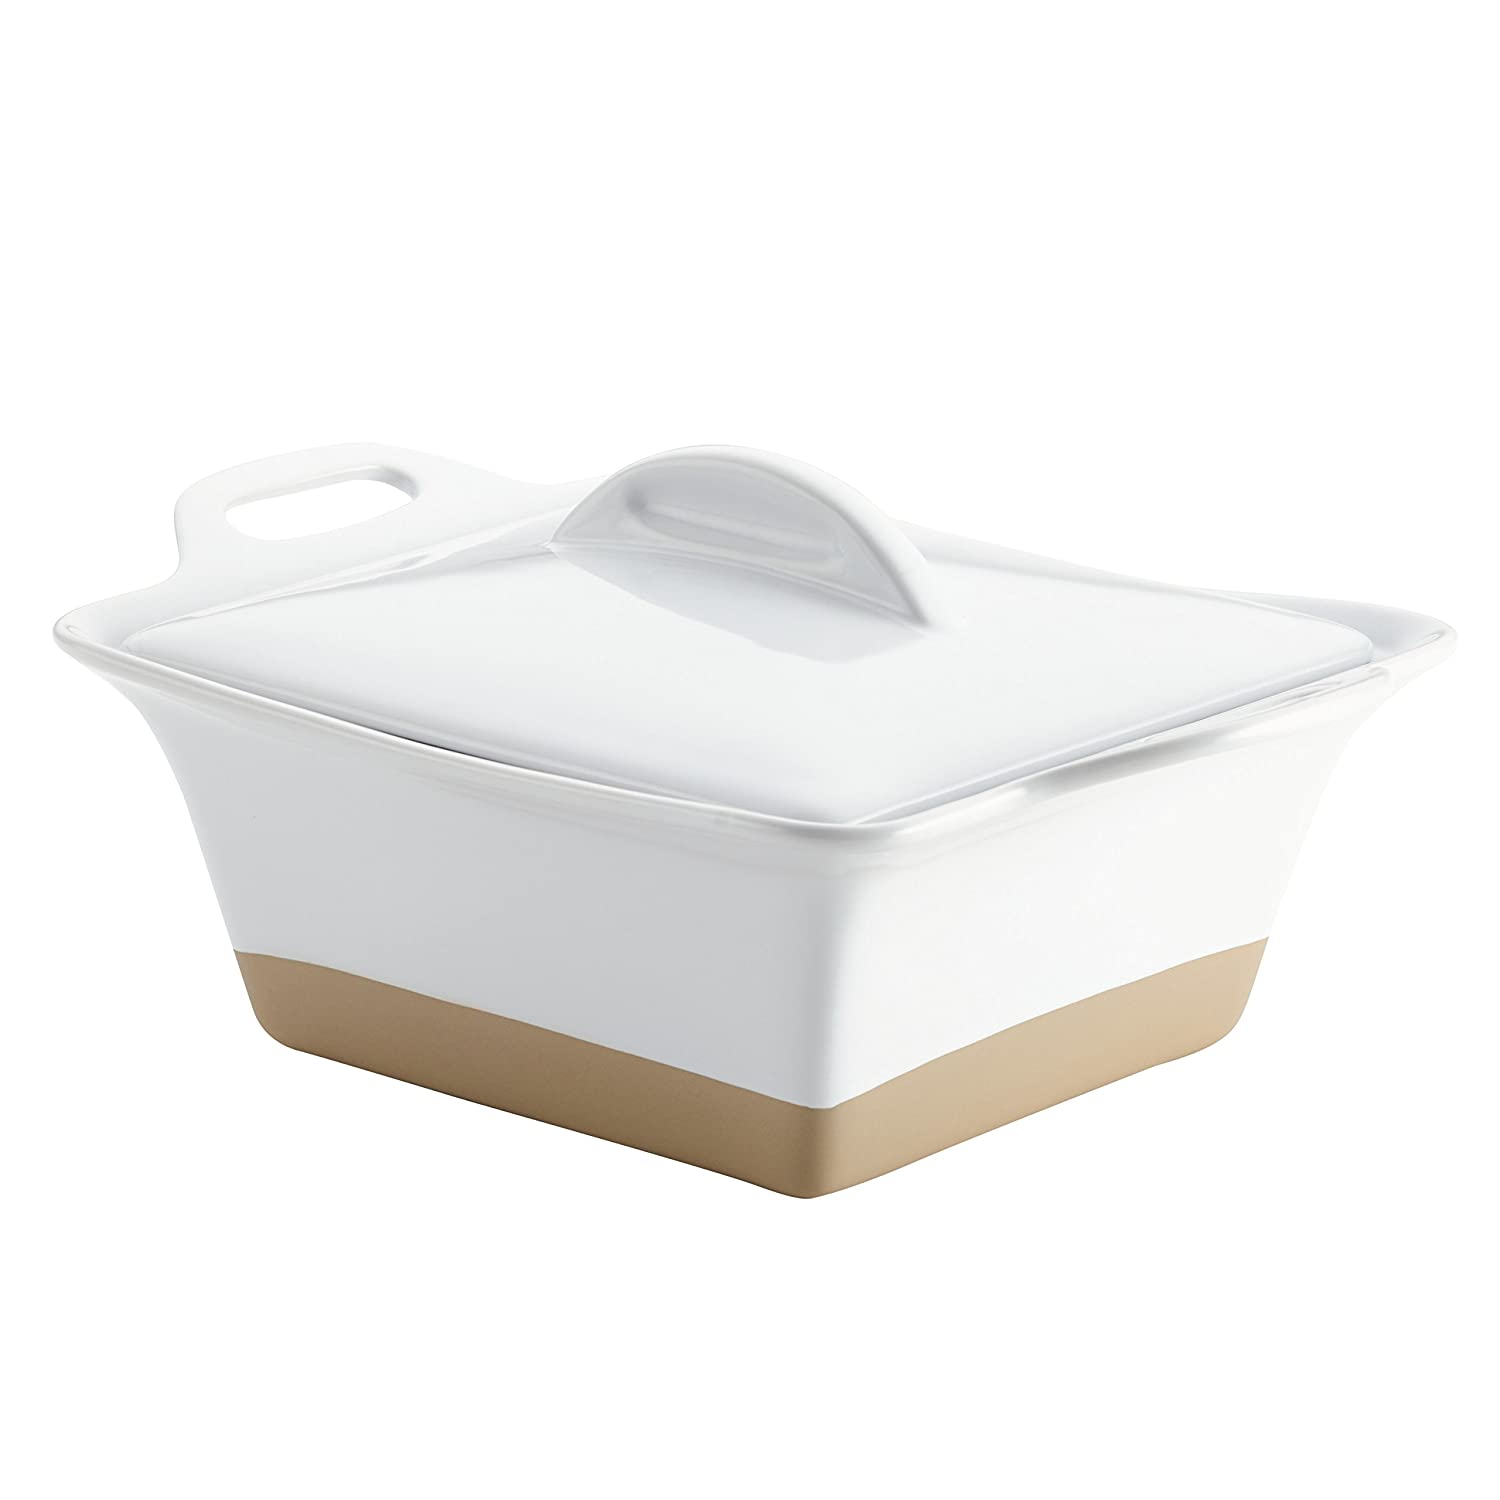 Rachael Ray 47027 Collection Inspired by Copenhagen Cozy Small Stoneware Square Casserole, White